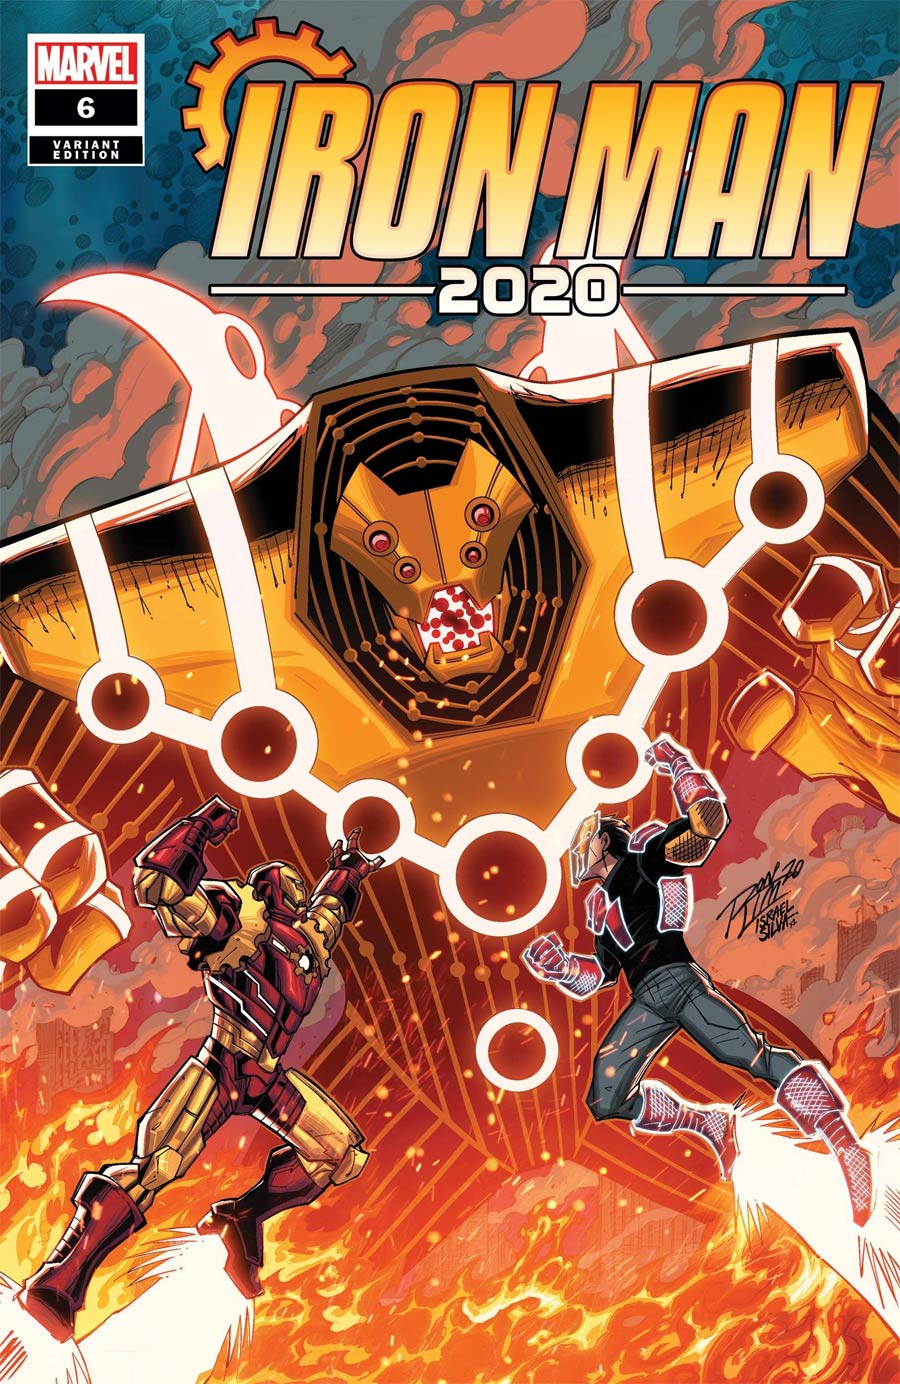 Iron Man 2020 #6 Cover D Variant Ron Lim Cover